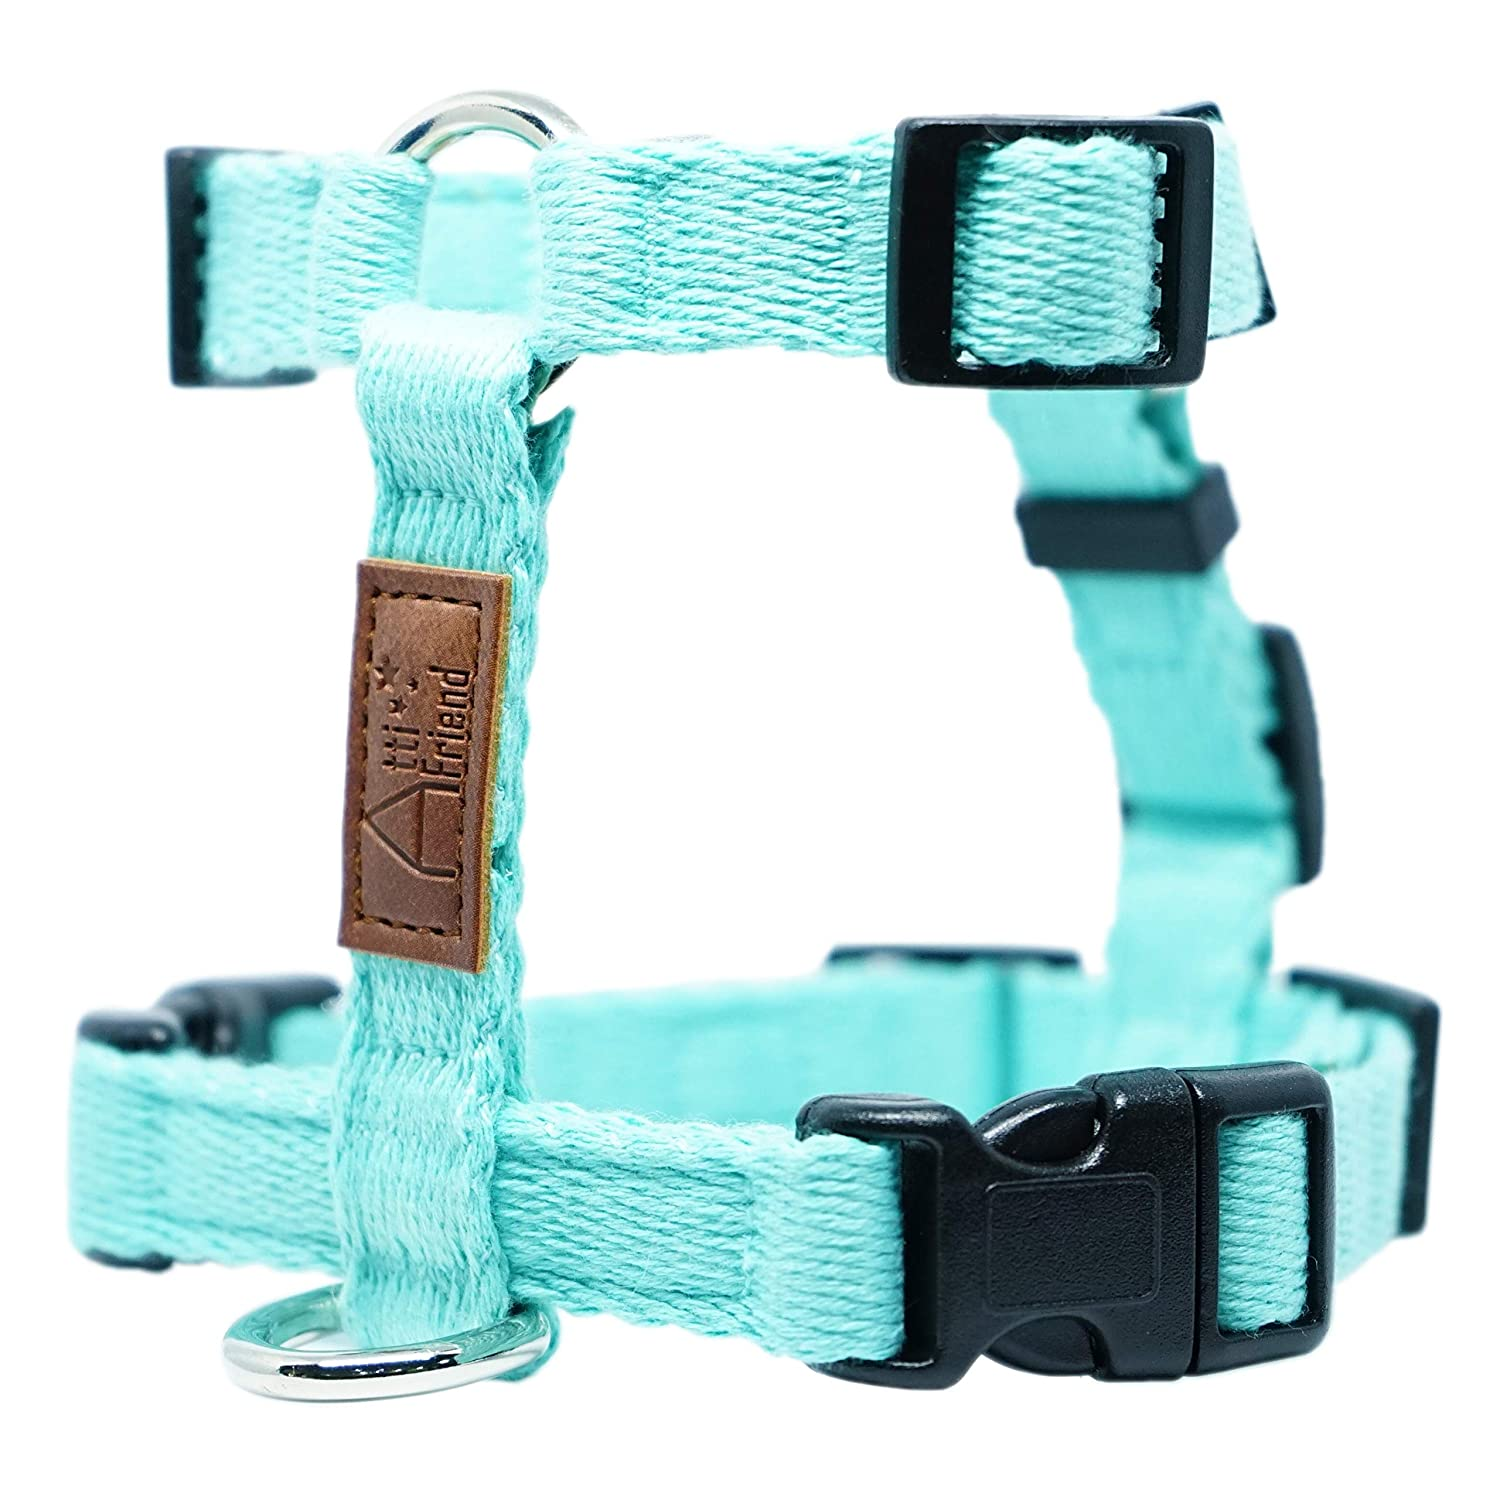 MINT X LARGE MINT X LARGE ATTI FRIEND Dog Harness; Adjustable Length and Easy Control; Pet Training; Variety color Choices; 4 Available Sizes (S M L XL); (X Large, Mint)